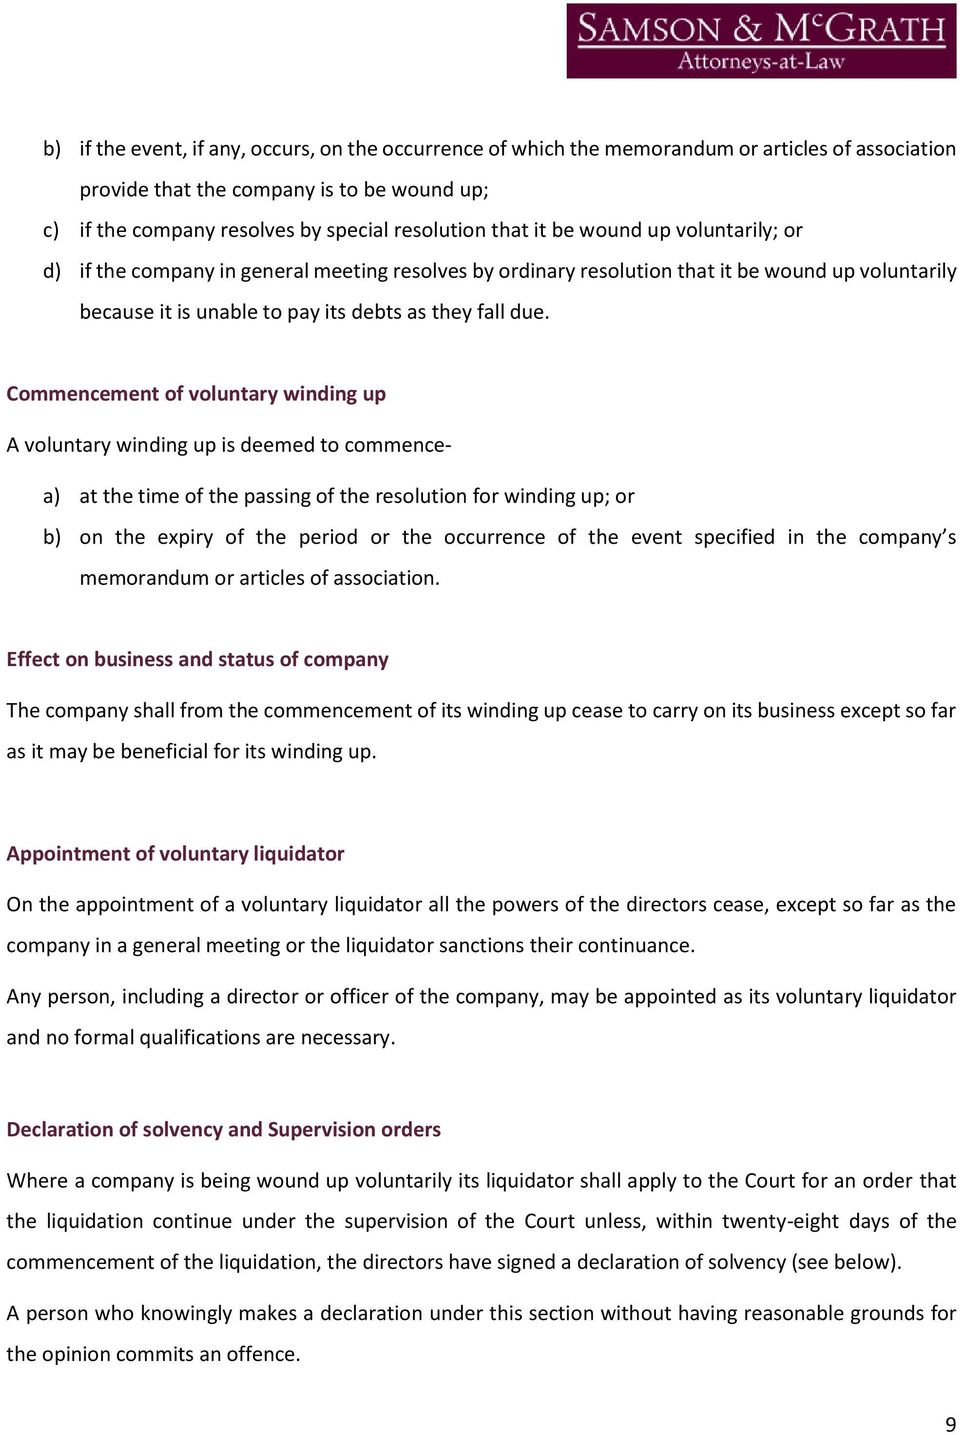 Commencement of voluntary winding up A voluntary winding up is deemed to commencea) at the time of the passing of the resolution for winding up; or b) on the expiry of the period or the occurrence of